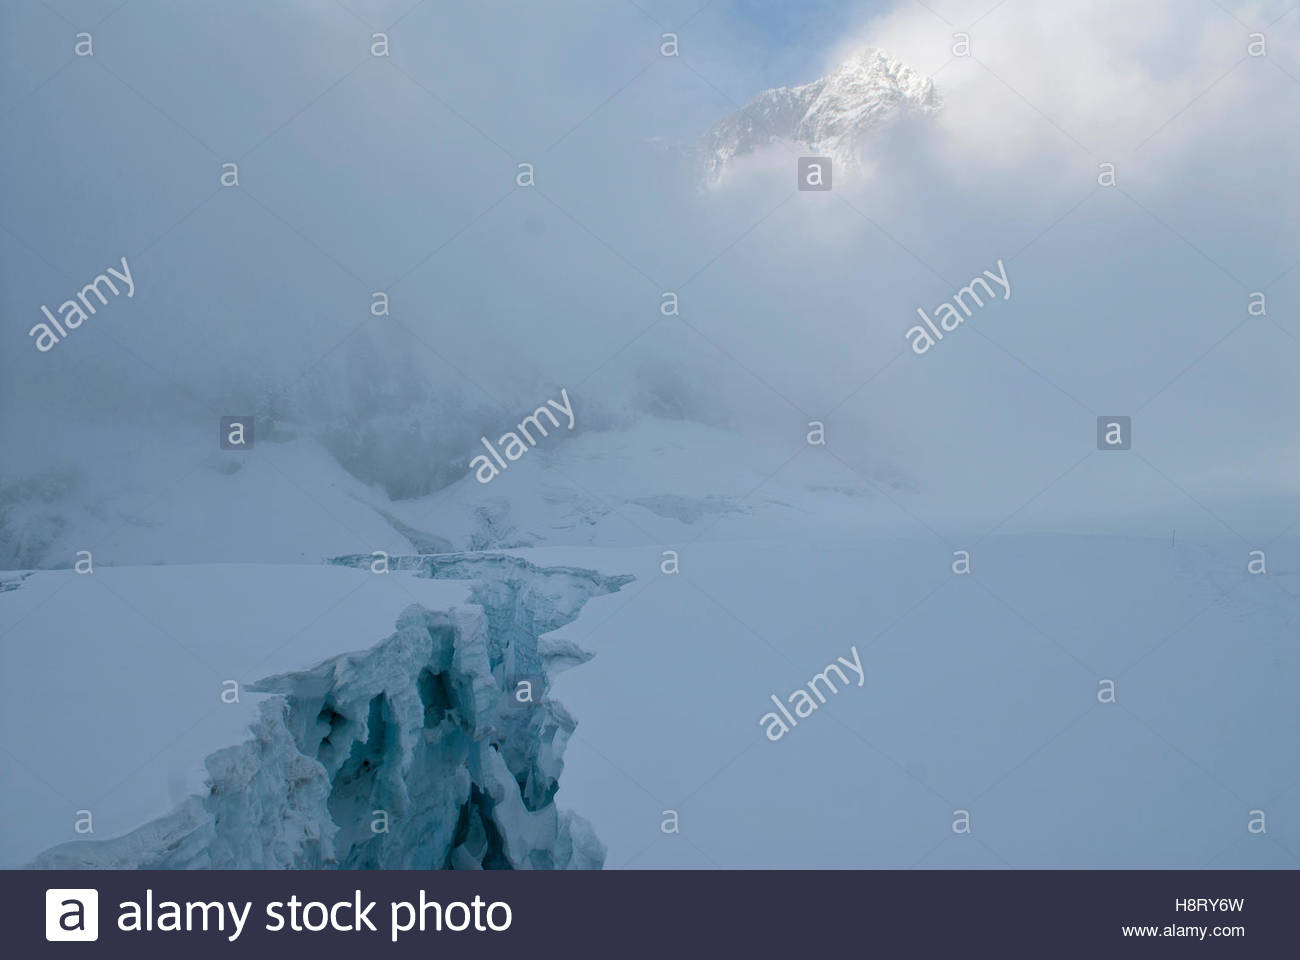 An ice fissure in the Himalaya Mountains. - Stock Image